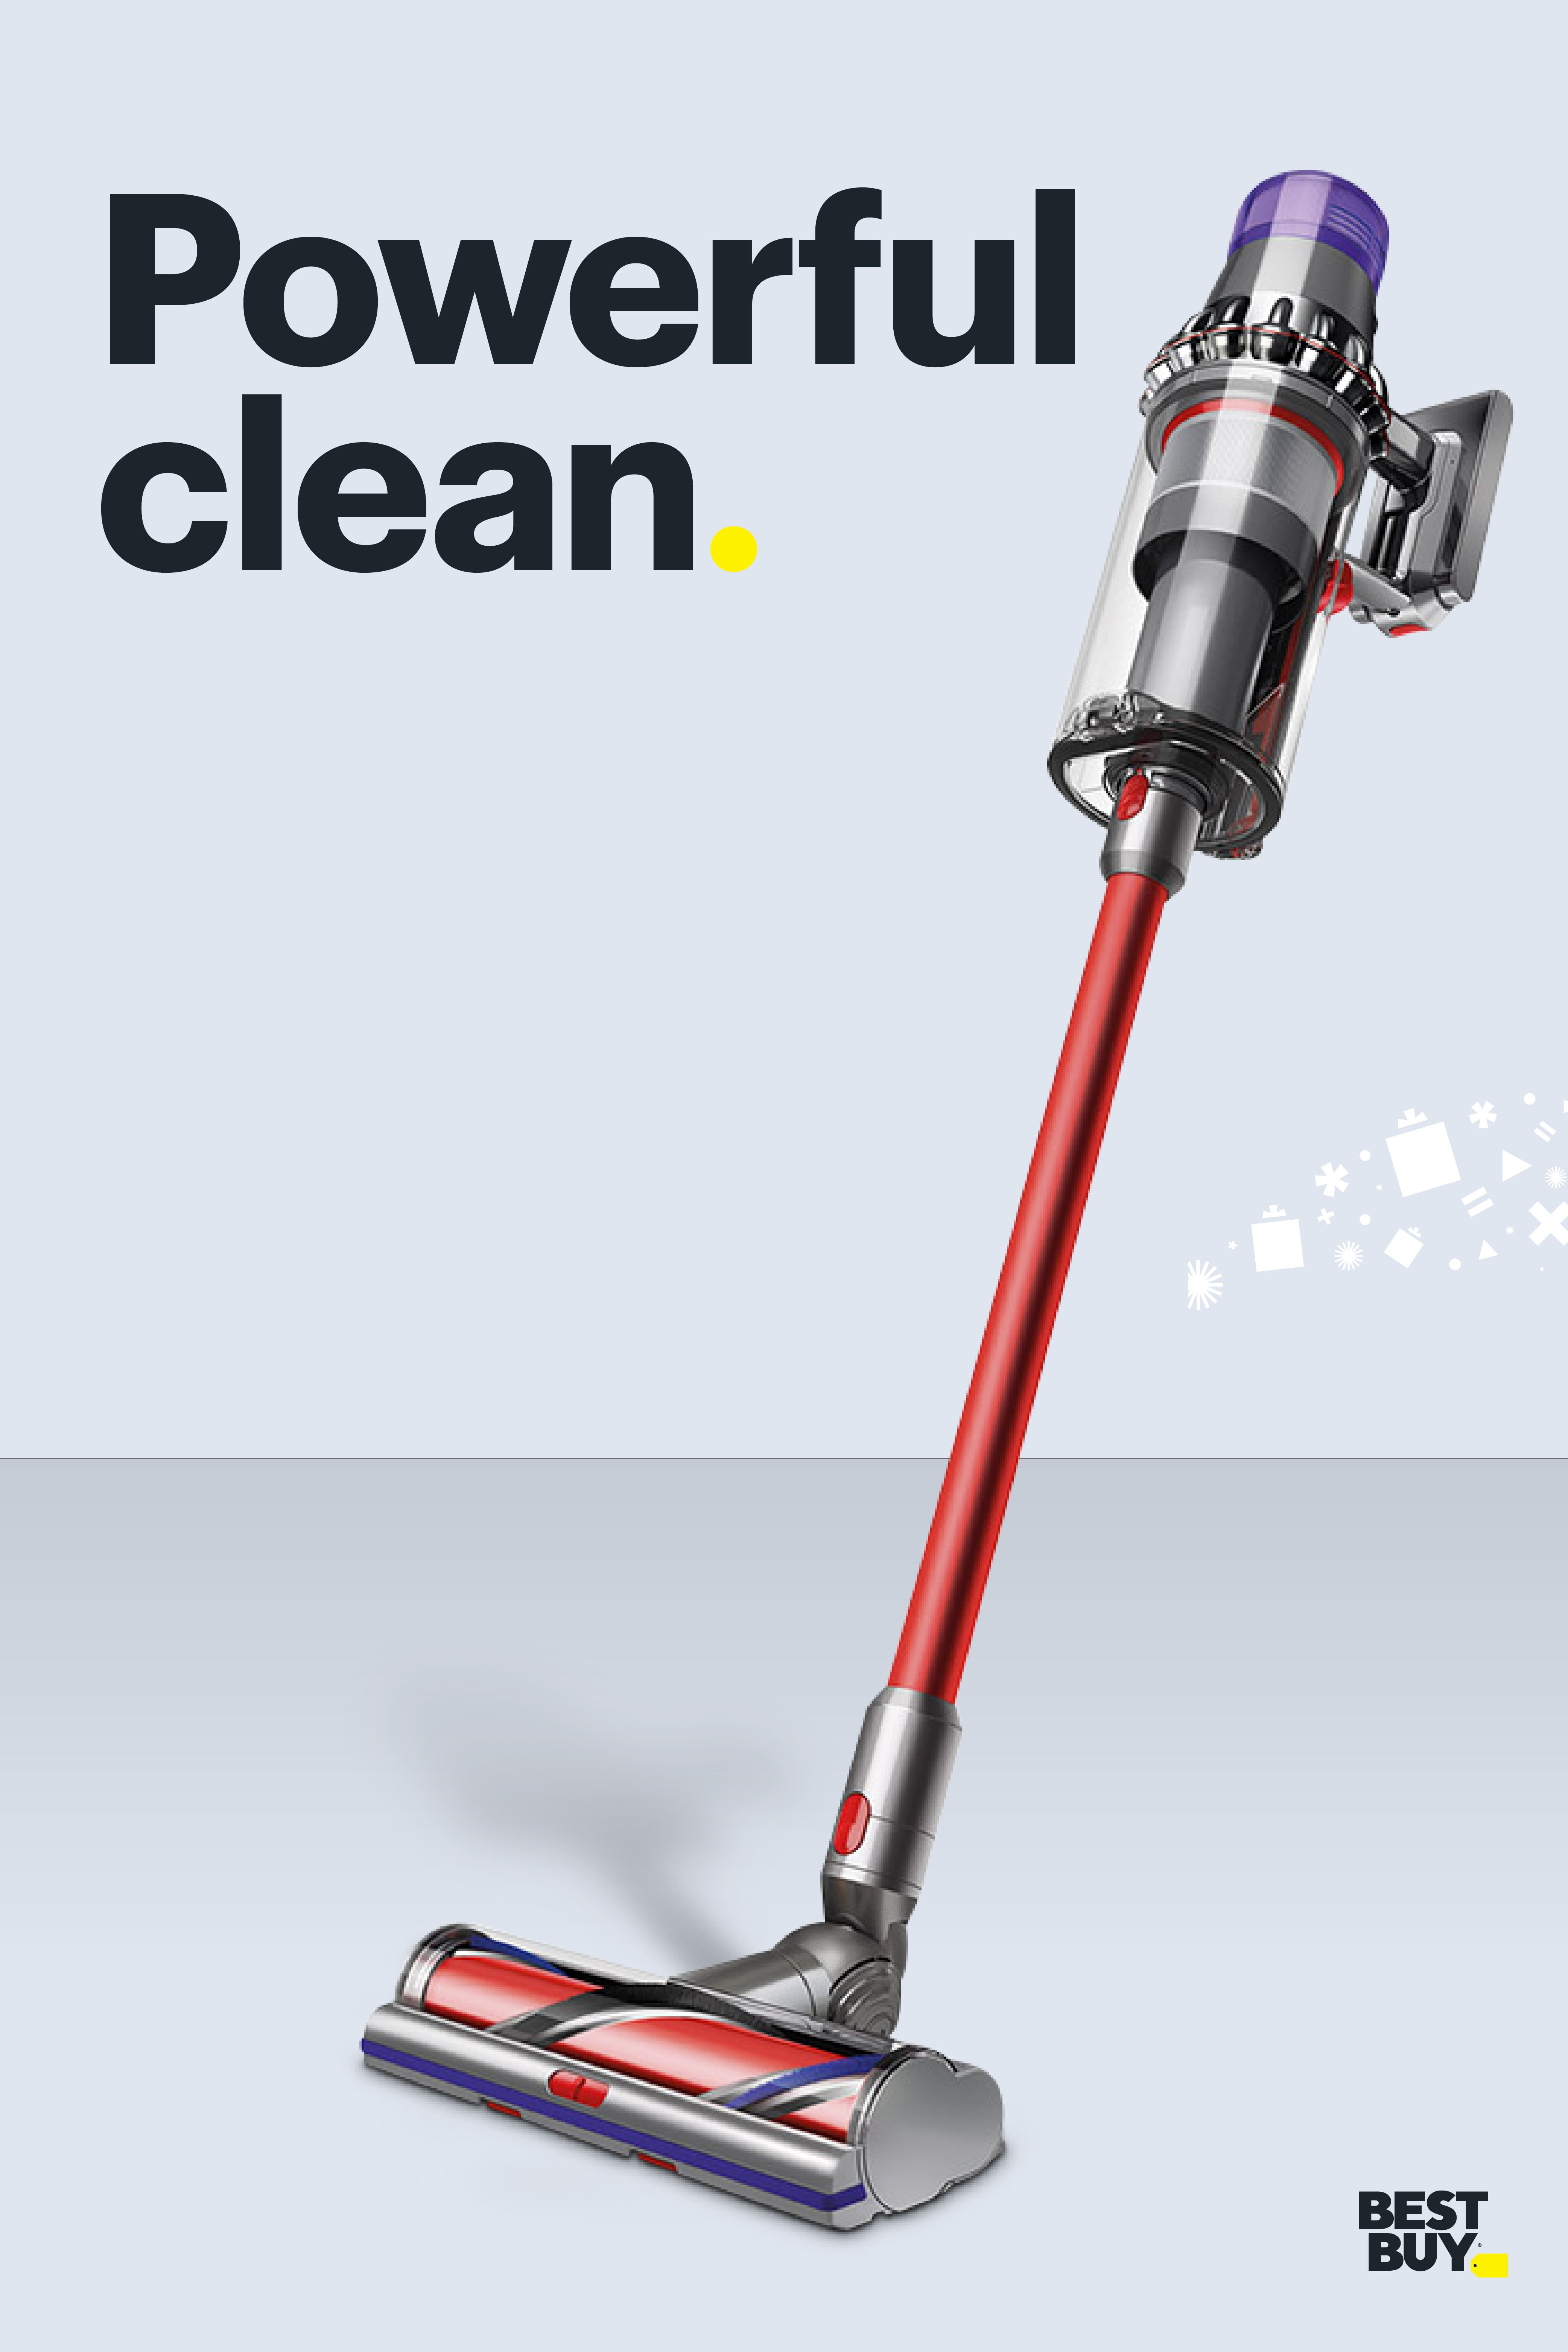 Dyson V11 Outsize Cordless Vacuum Red Nickel 298706 01 Best Buy Cool Things To Buy Cordless Vacuum Cleaning Gadgets